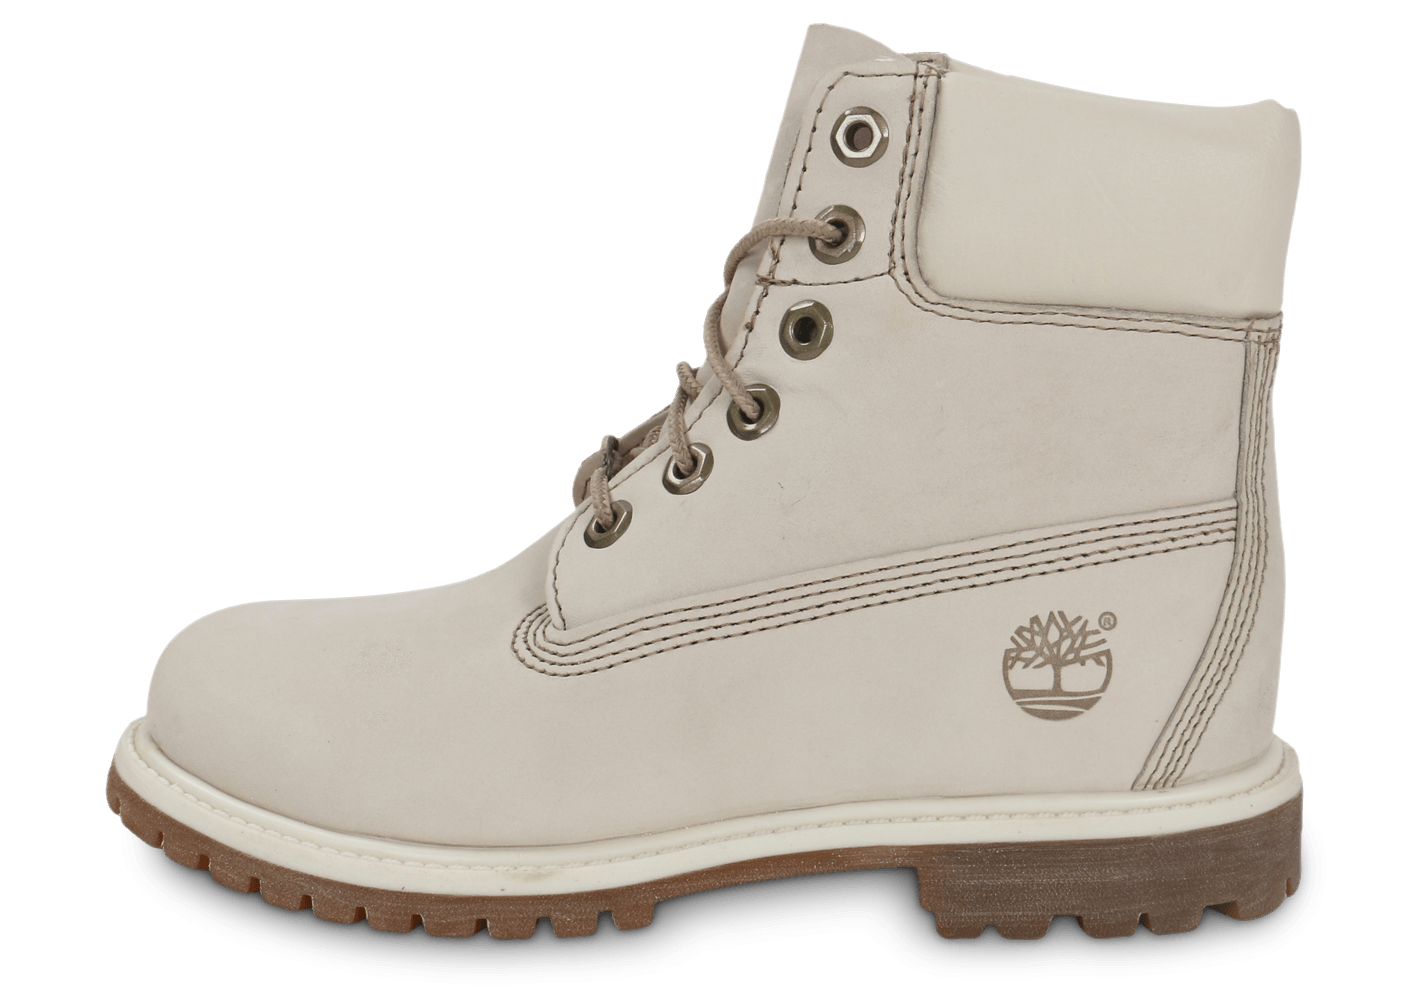 timberland 6 inch premium boots off white chaussures chaussures chausport. Black Bedroom Furniture Sets. Home Design Ideas